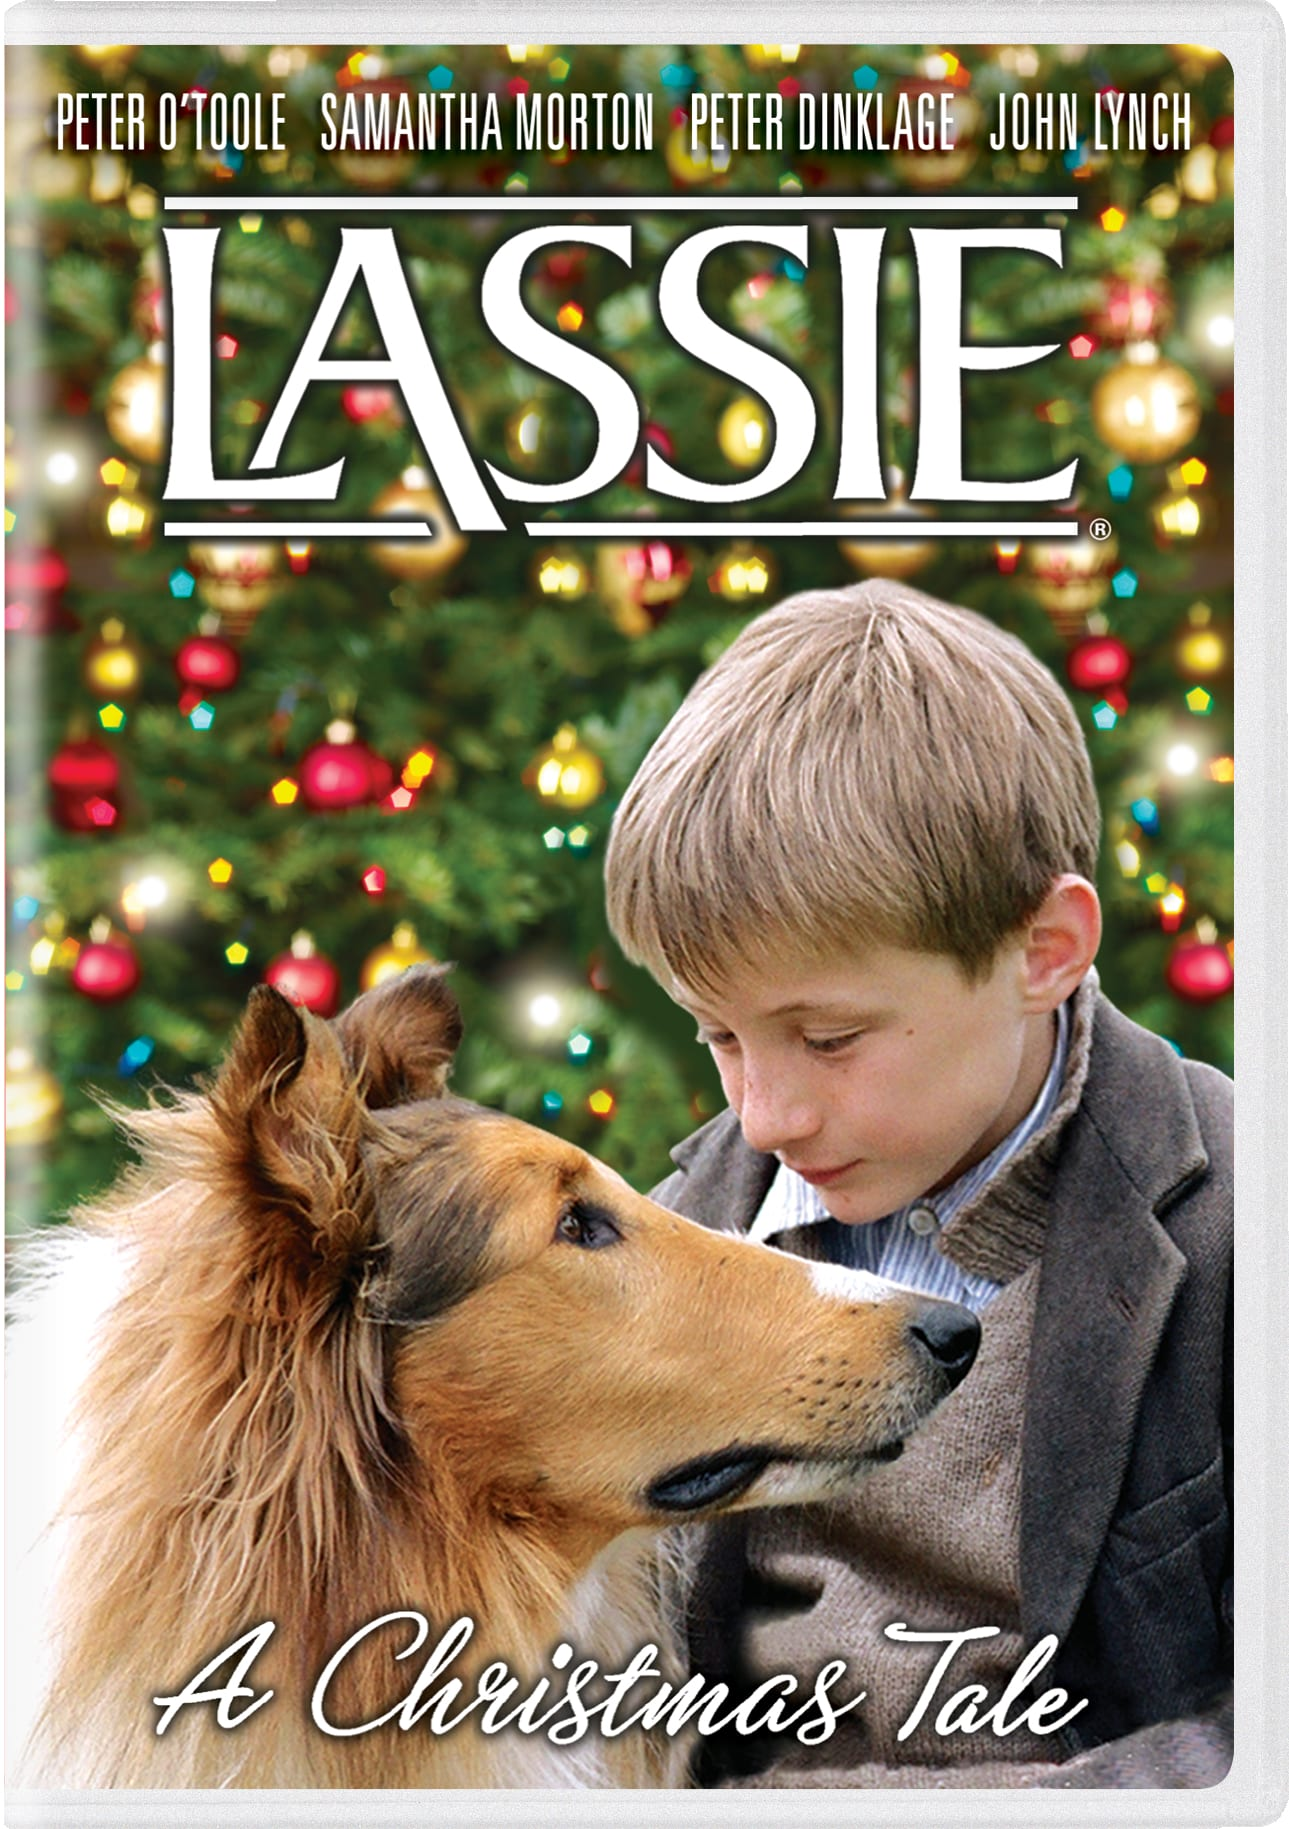 Lassie - A Christmas Tale (2005) [DVD]